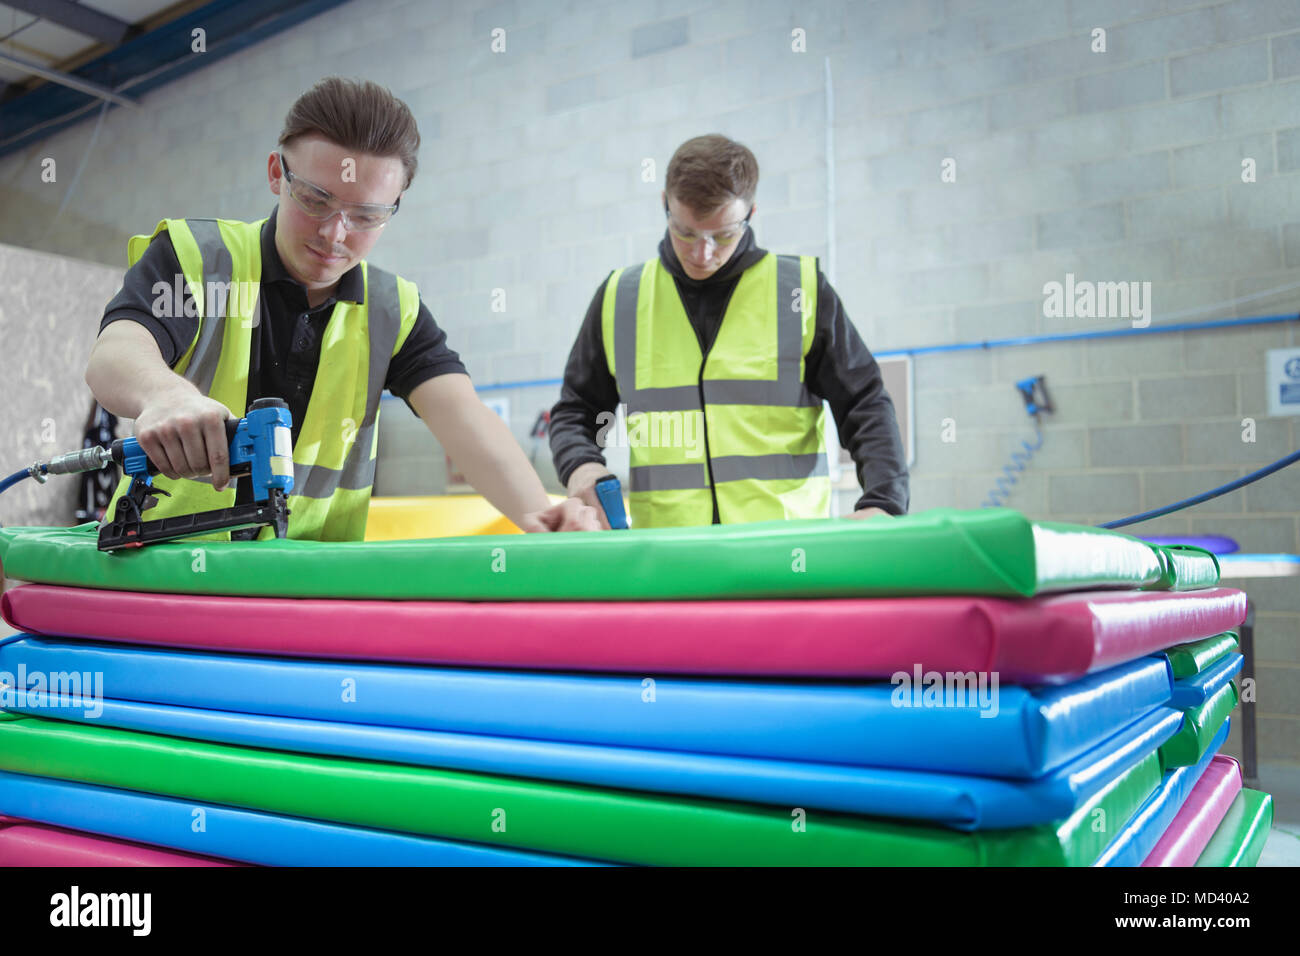 Workers assembling soft coloured mats in factory - Stock Image